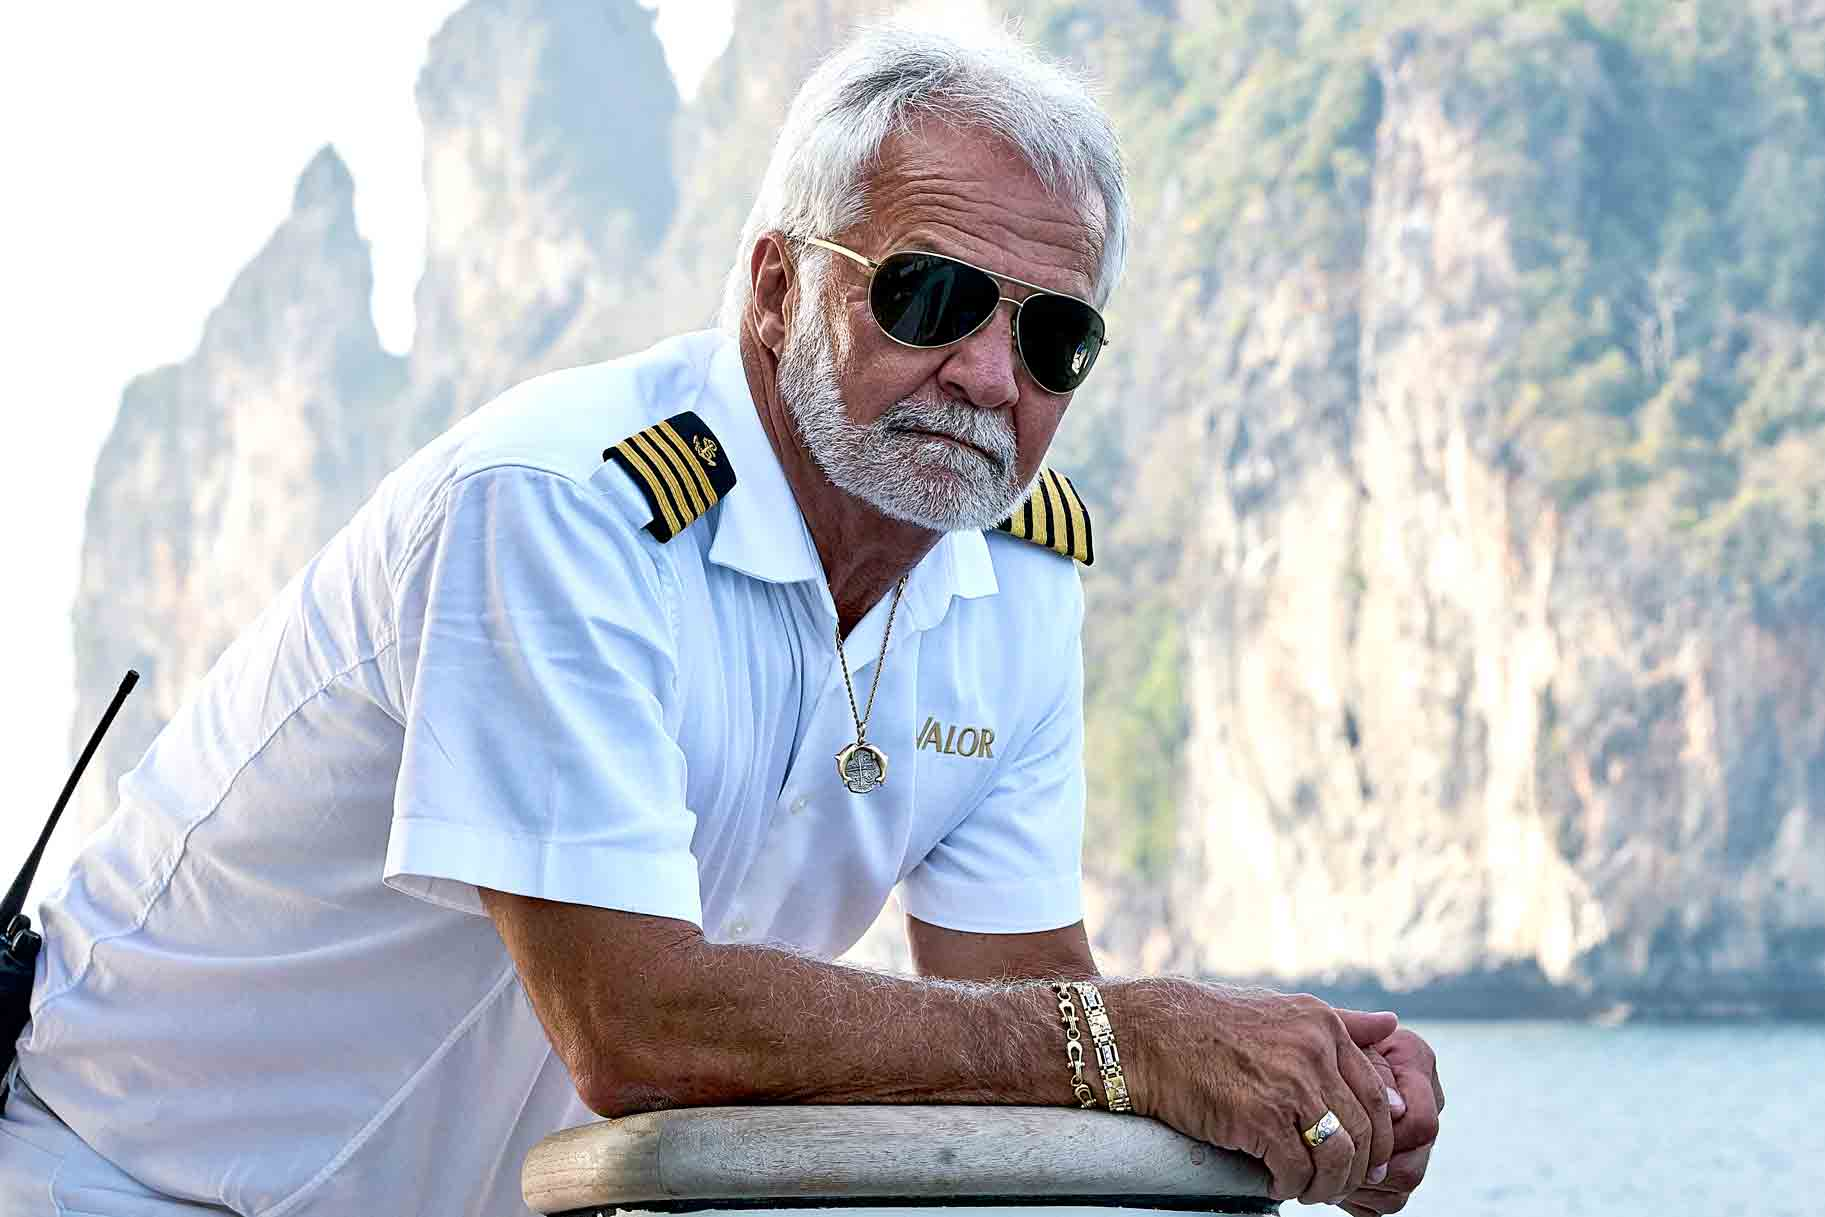 Captain Lee Honors Sons Memory